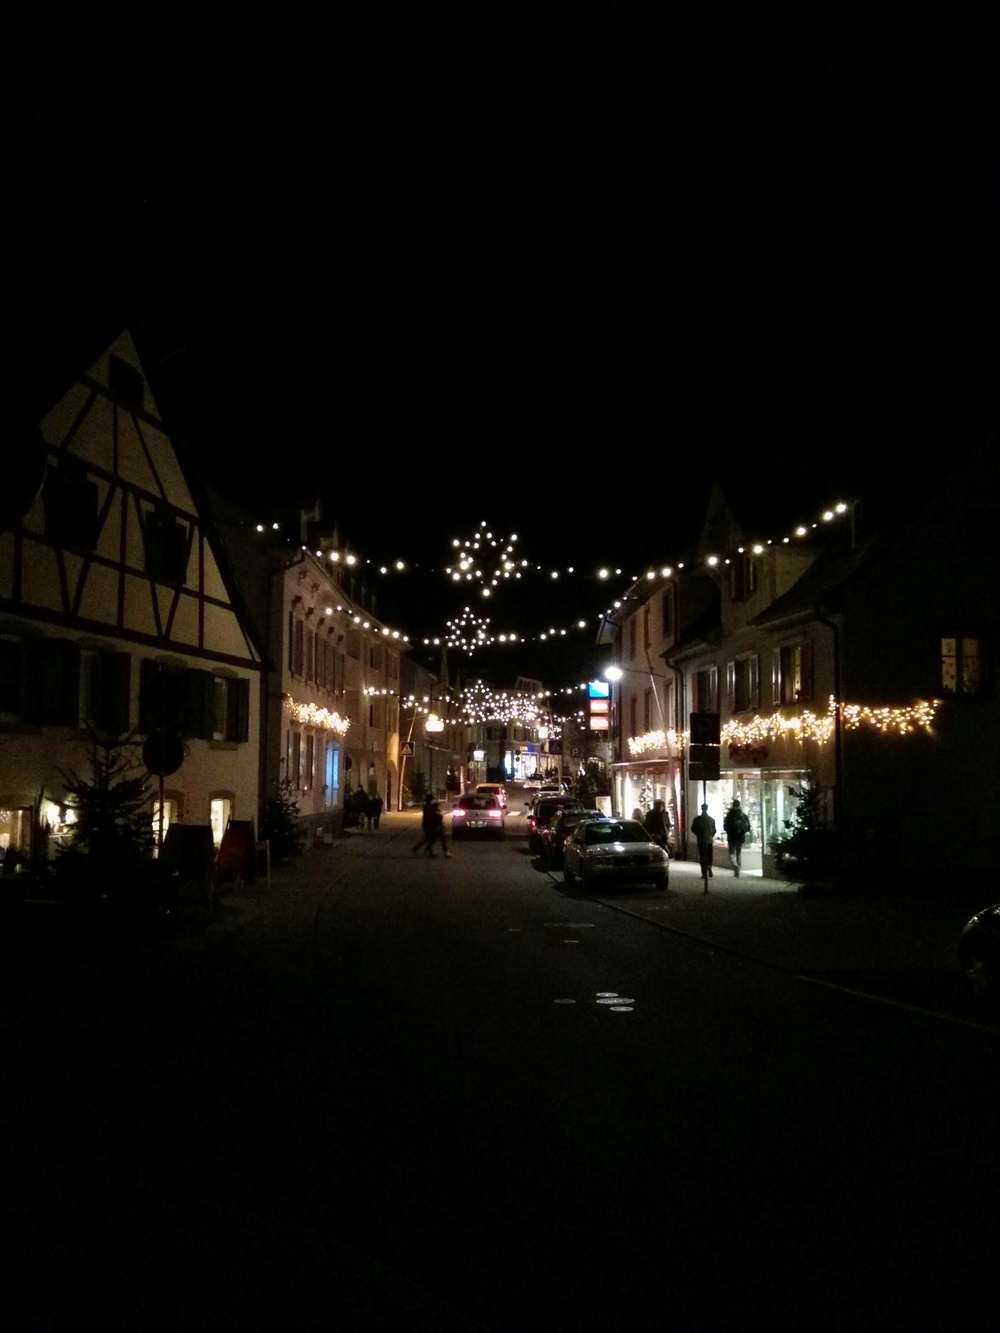 Kandern's main street lit up for Christmas